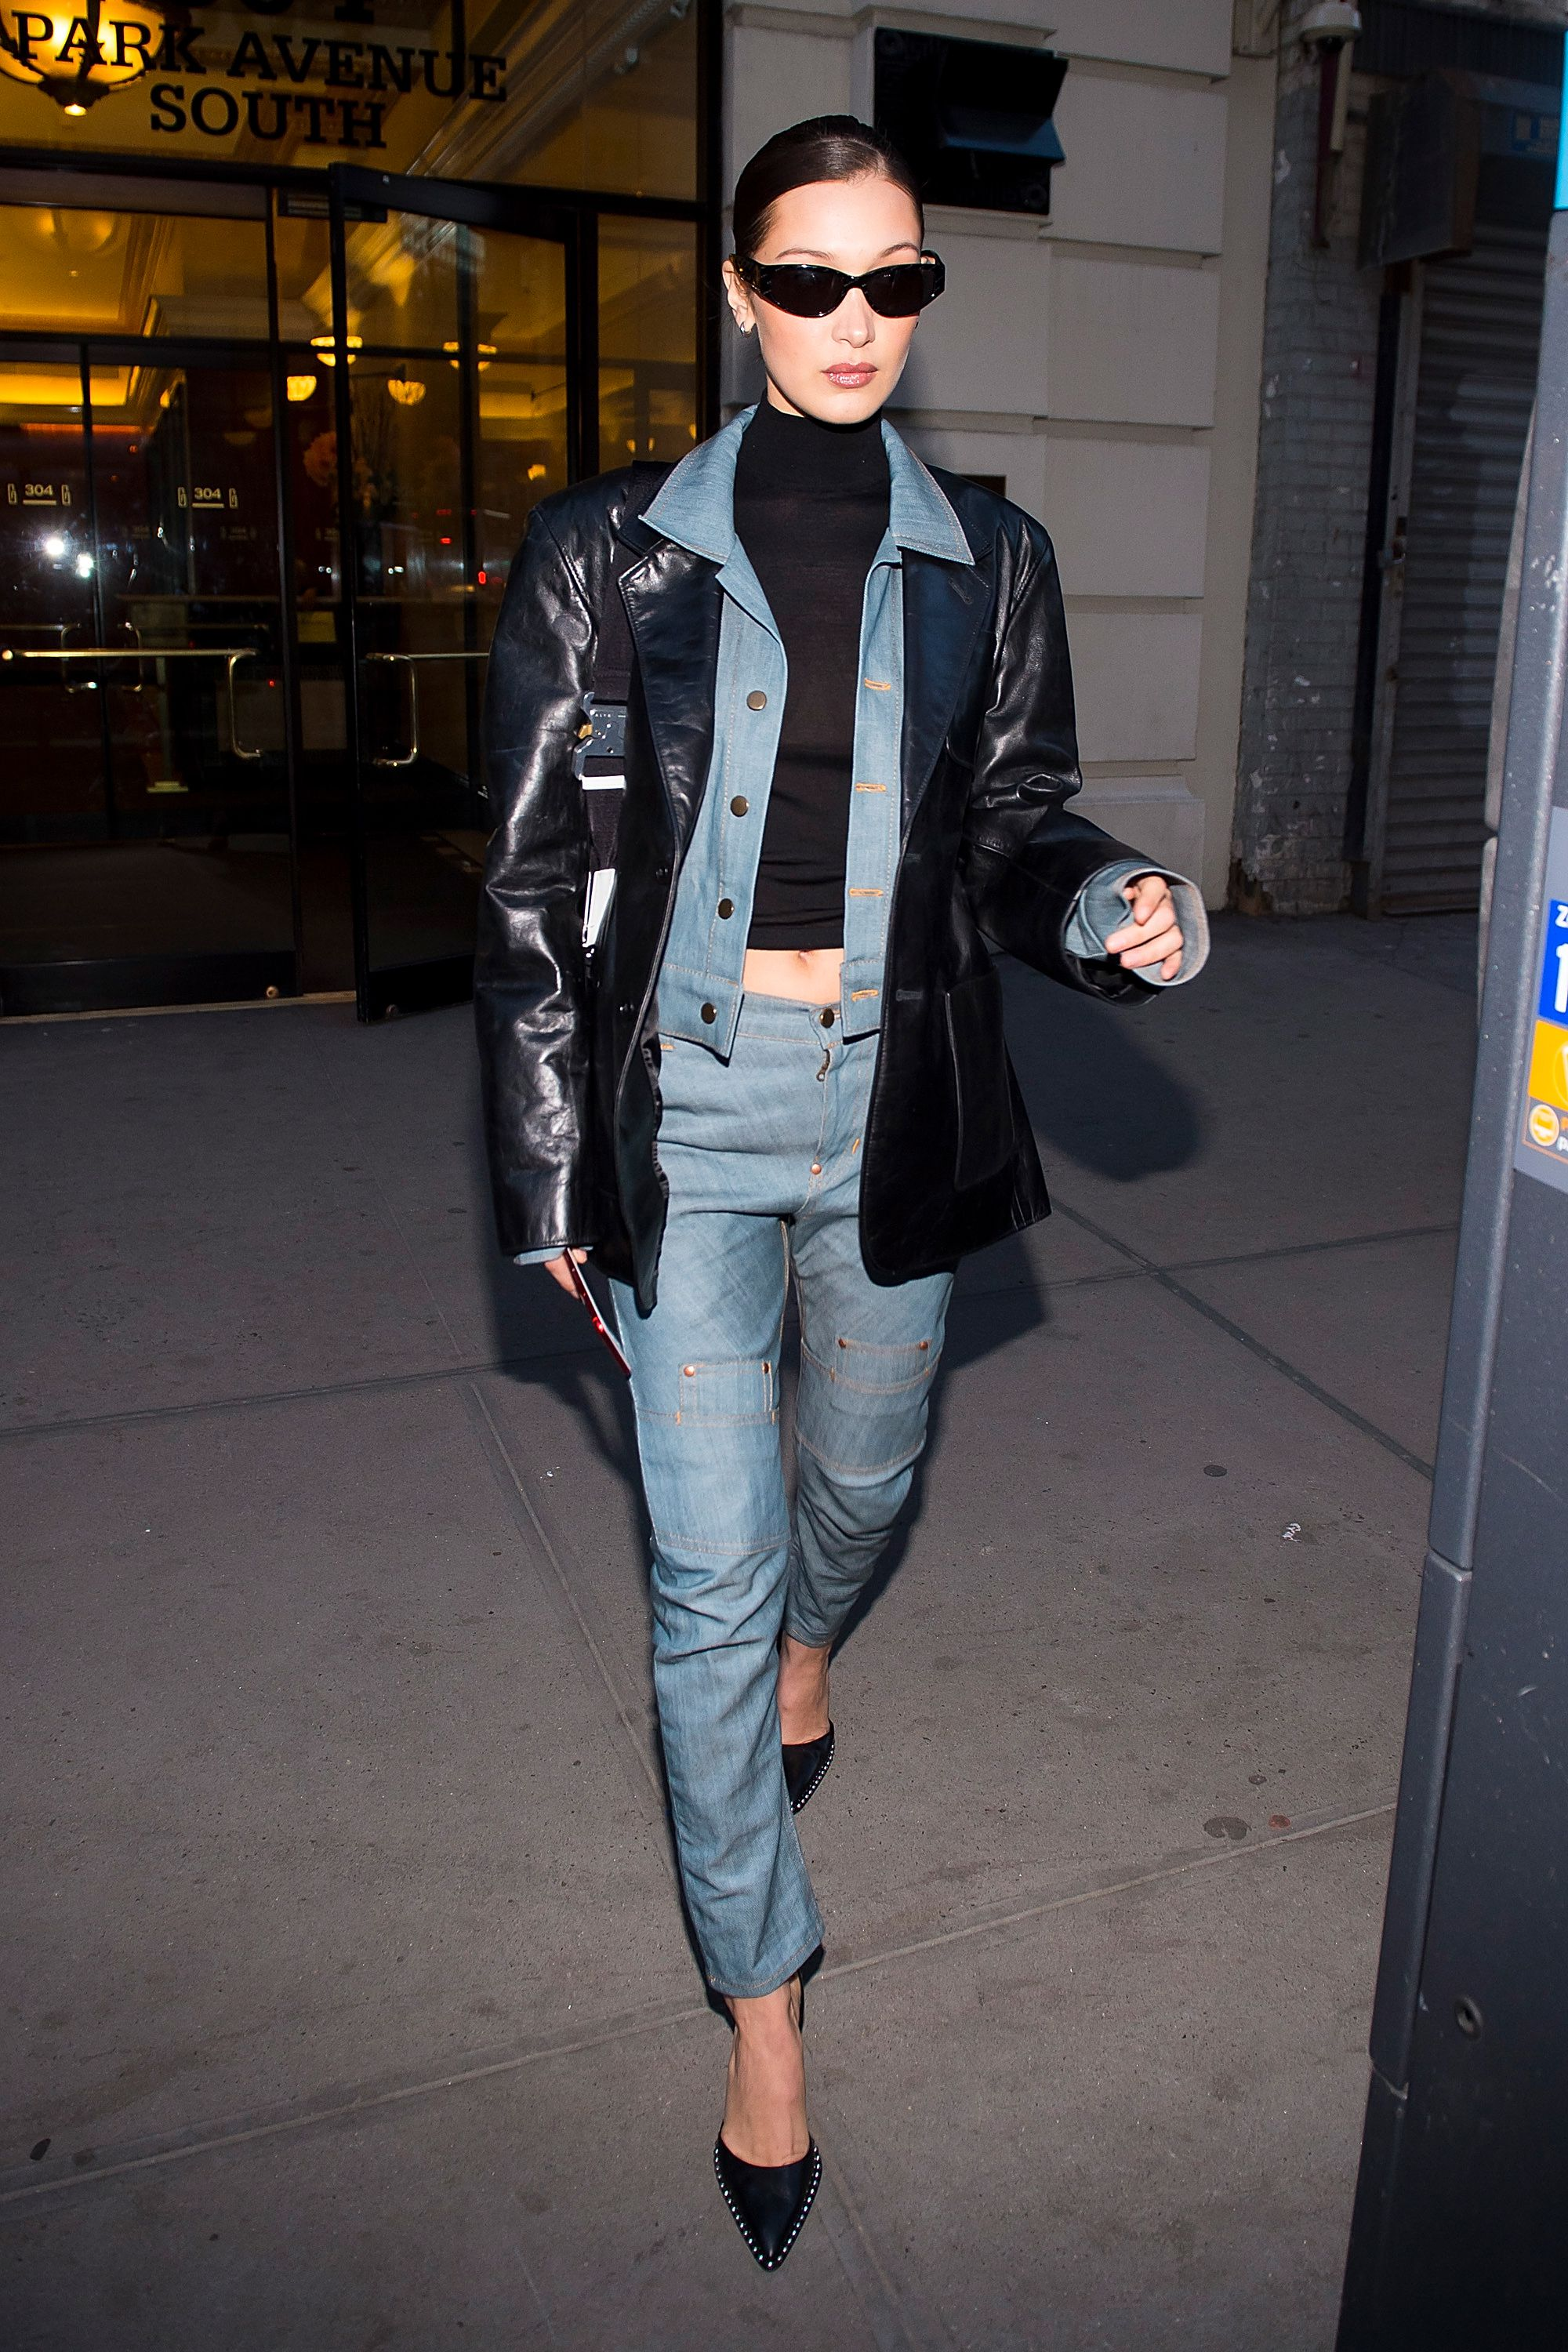 hbz-the-list-denim-jackets-gettyimages-914654828-1518402615.jpg (2000×3000)